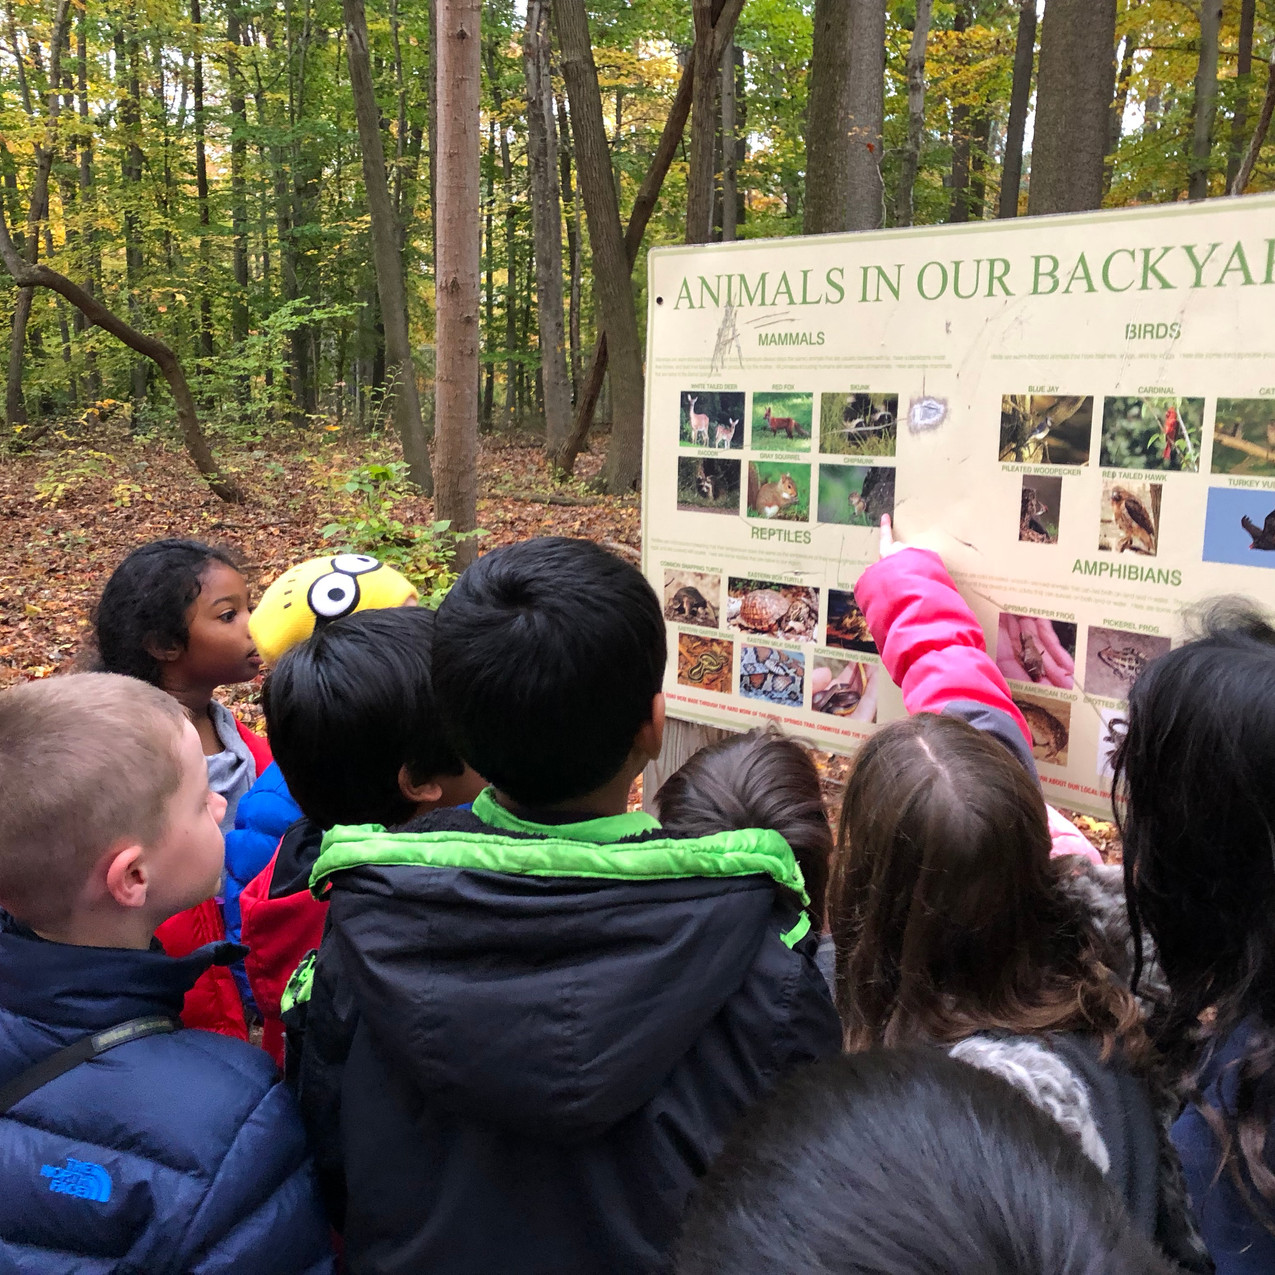 Reviewing our Backyard Animals